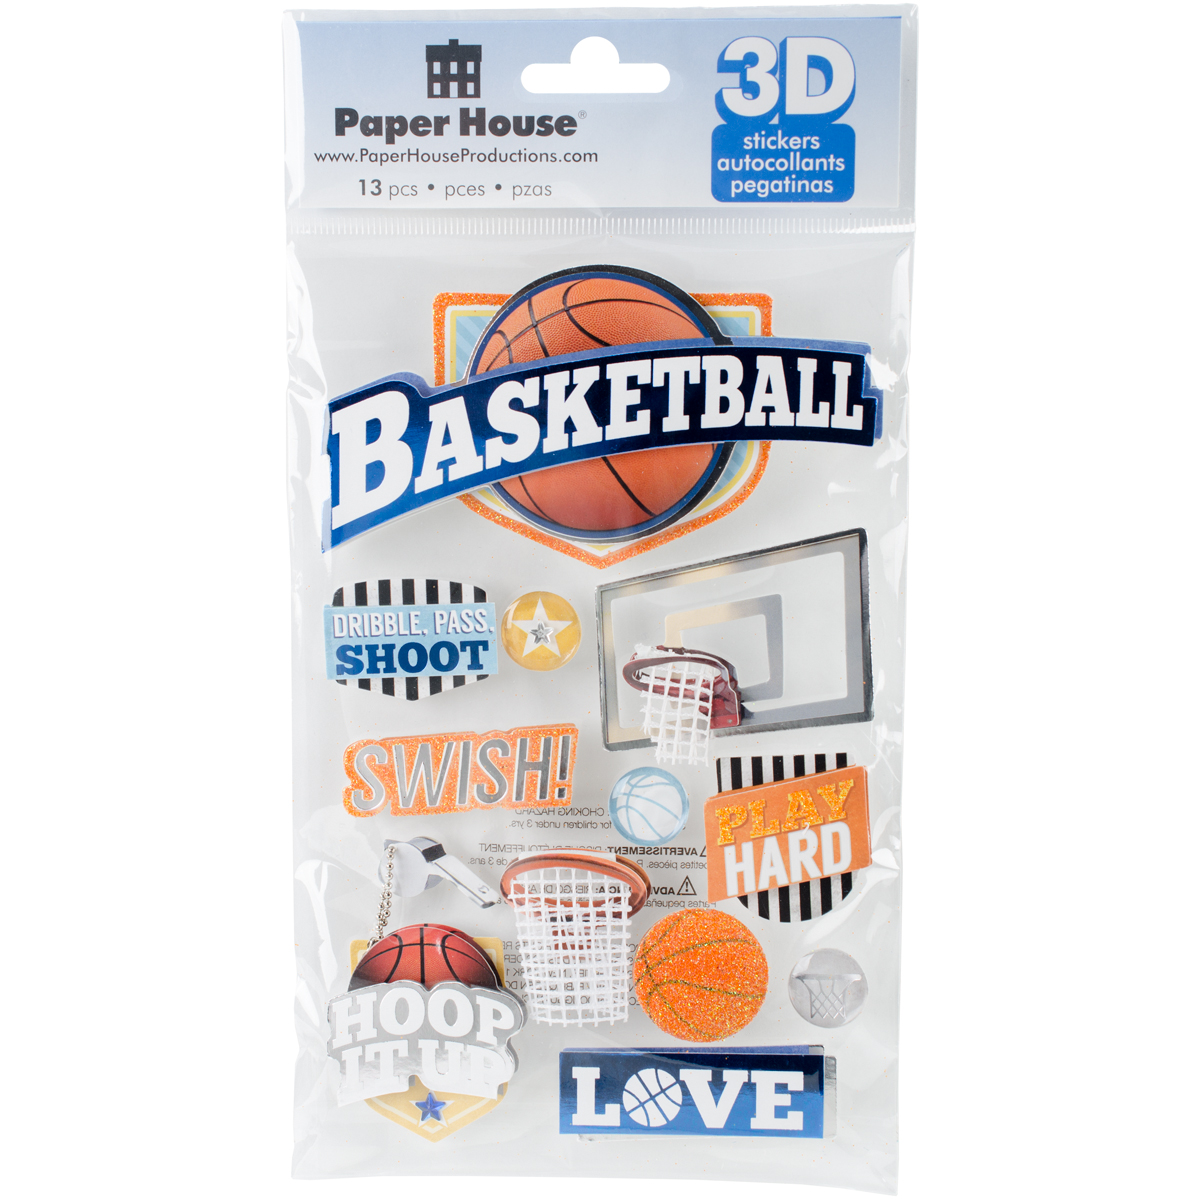 BASKETBALL-3D STICKERS